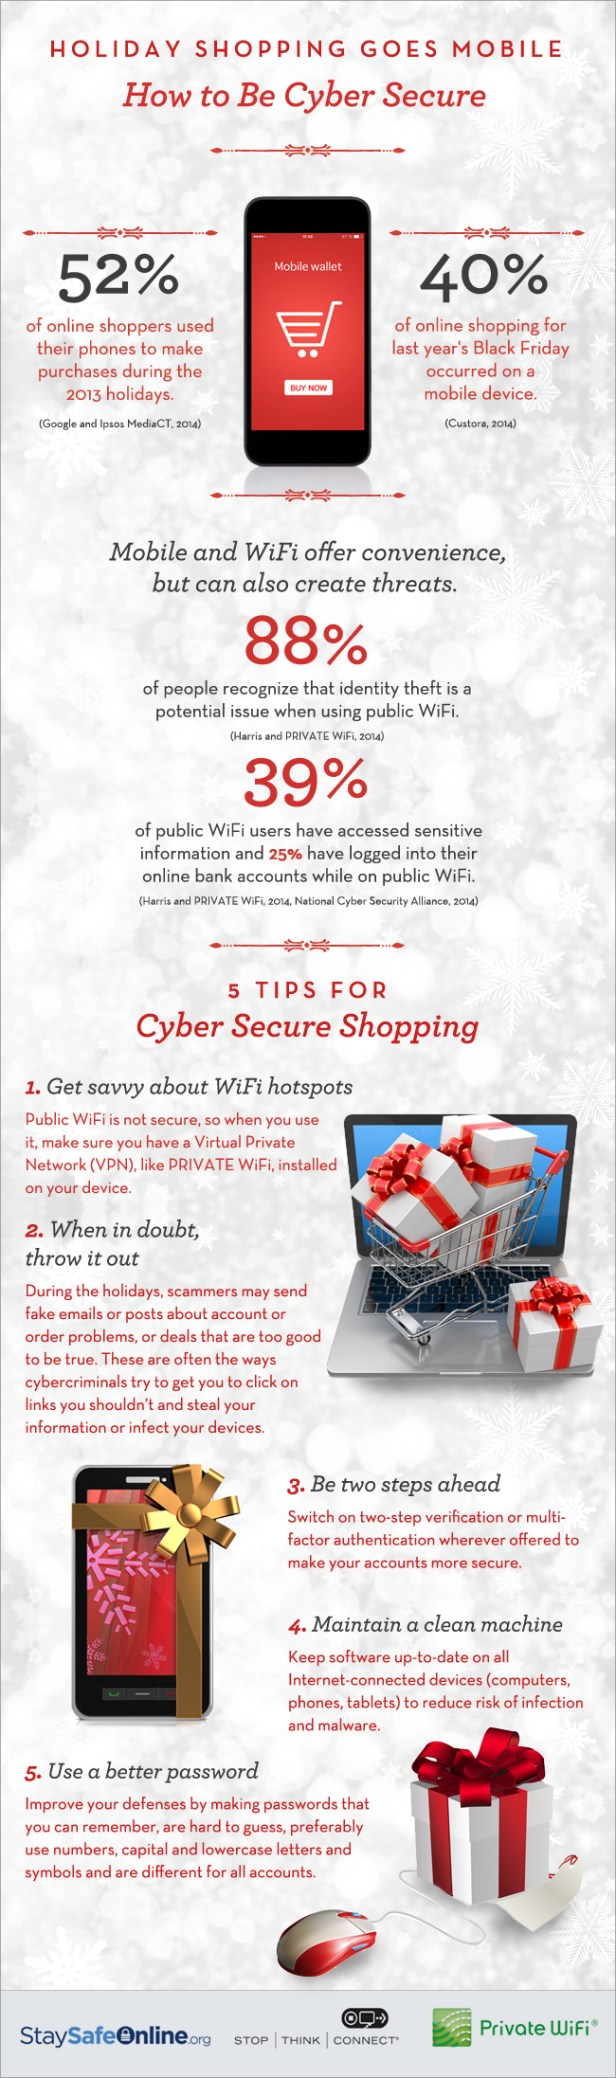 Holiday Shopping Cyber Secure Infographic